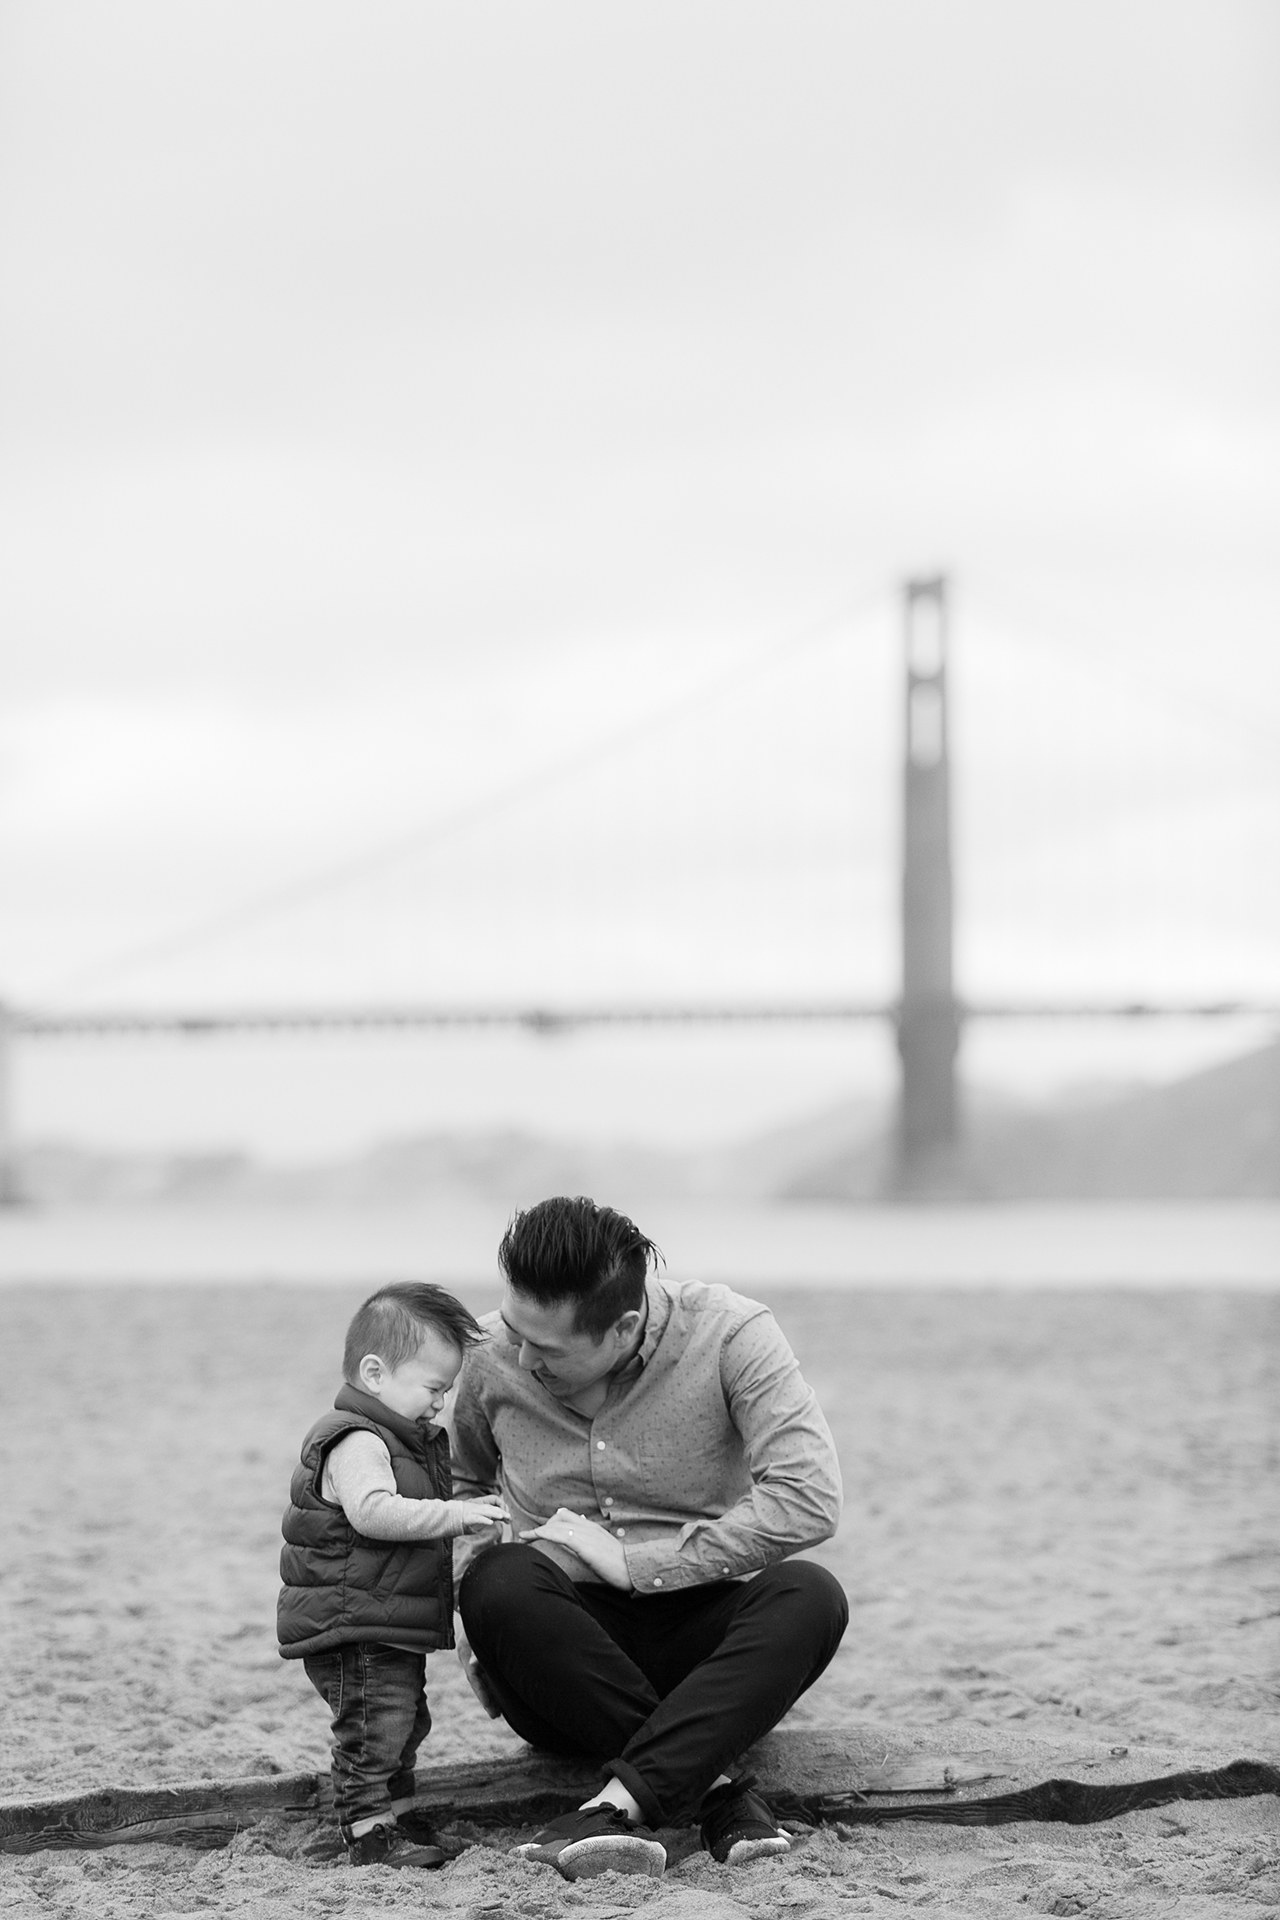 San_Francisco_Children_Family_Portrait_002.jpg